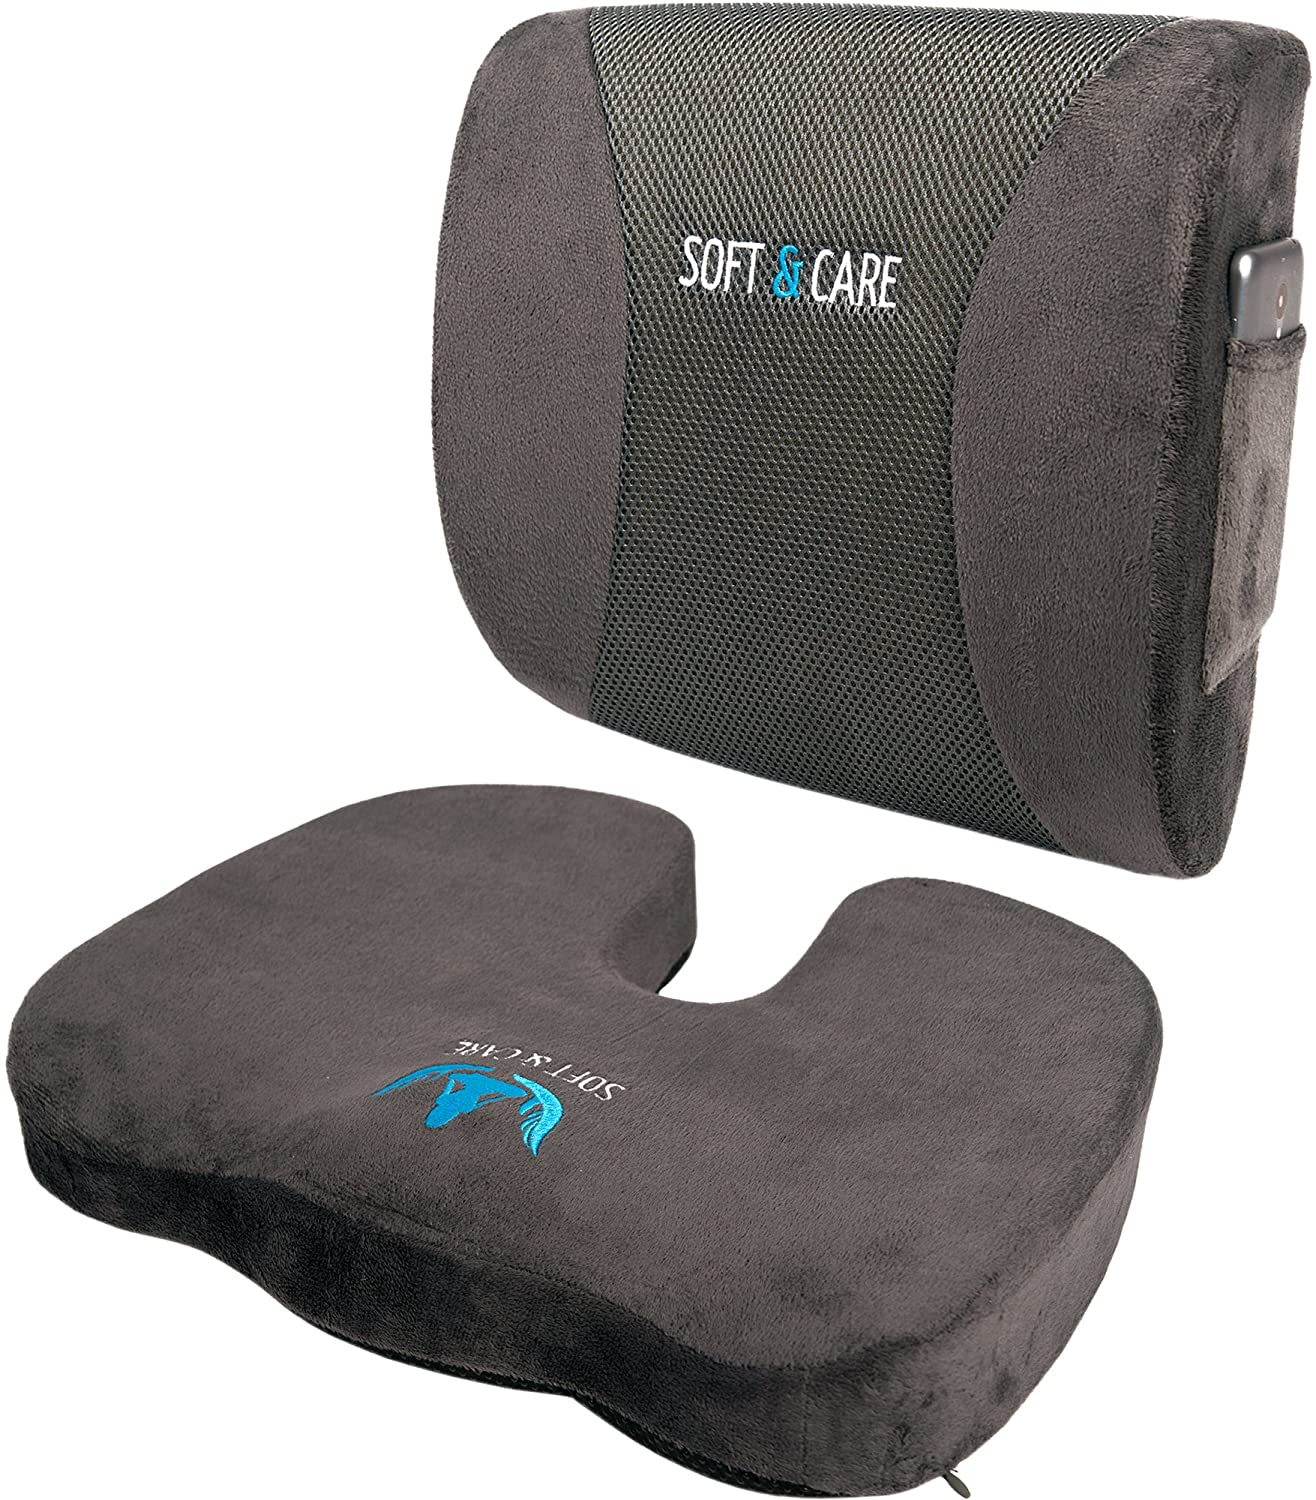 SOFTaCARE Seat Cushion Coccyx Orthopedic Memory Foam